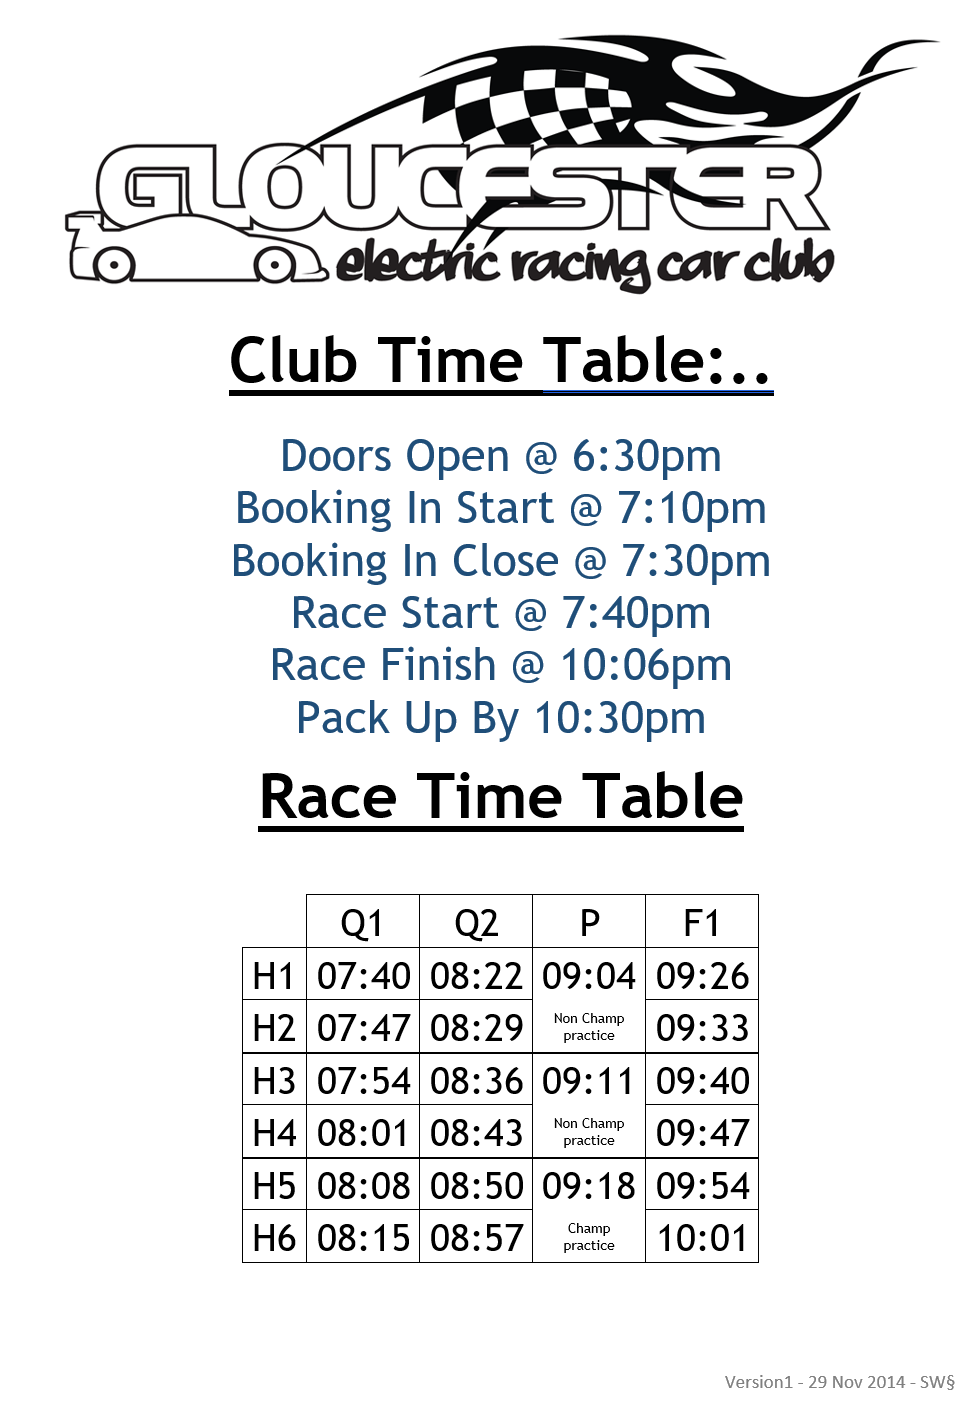 Club Time Table